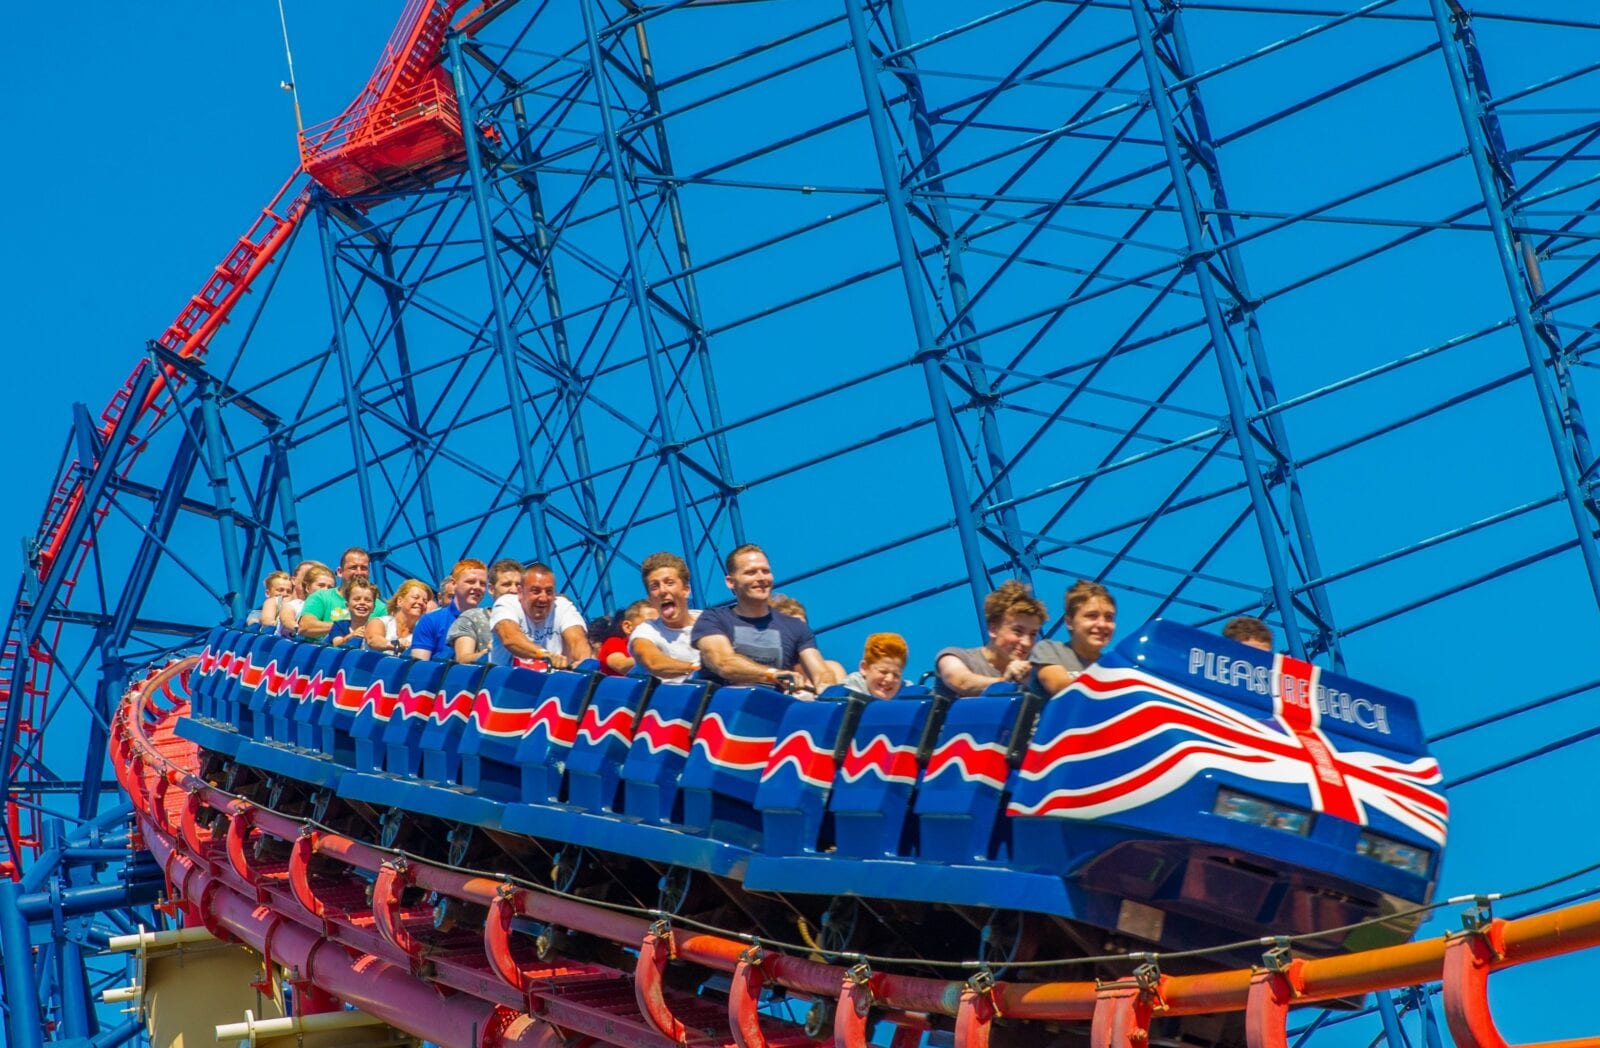 Blackpool Pleasure Beach launches new 'Platinum Pass' giving visitors unlimited access to the park, The Manc